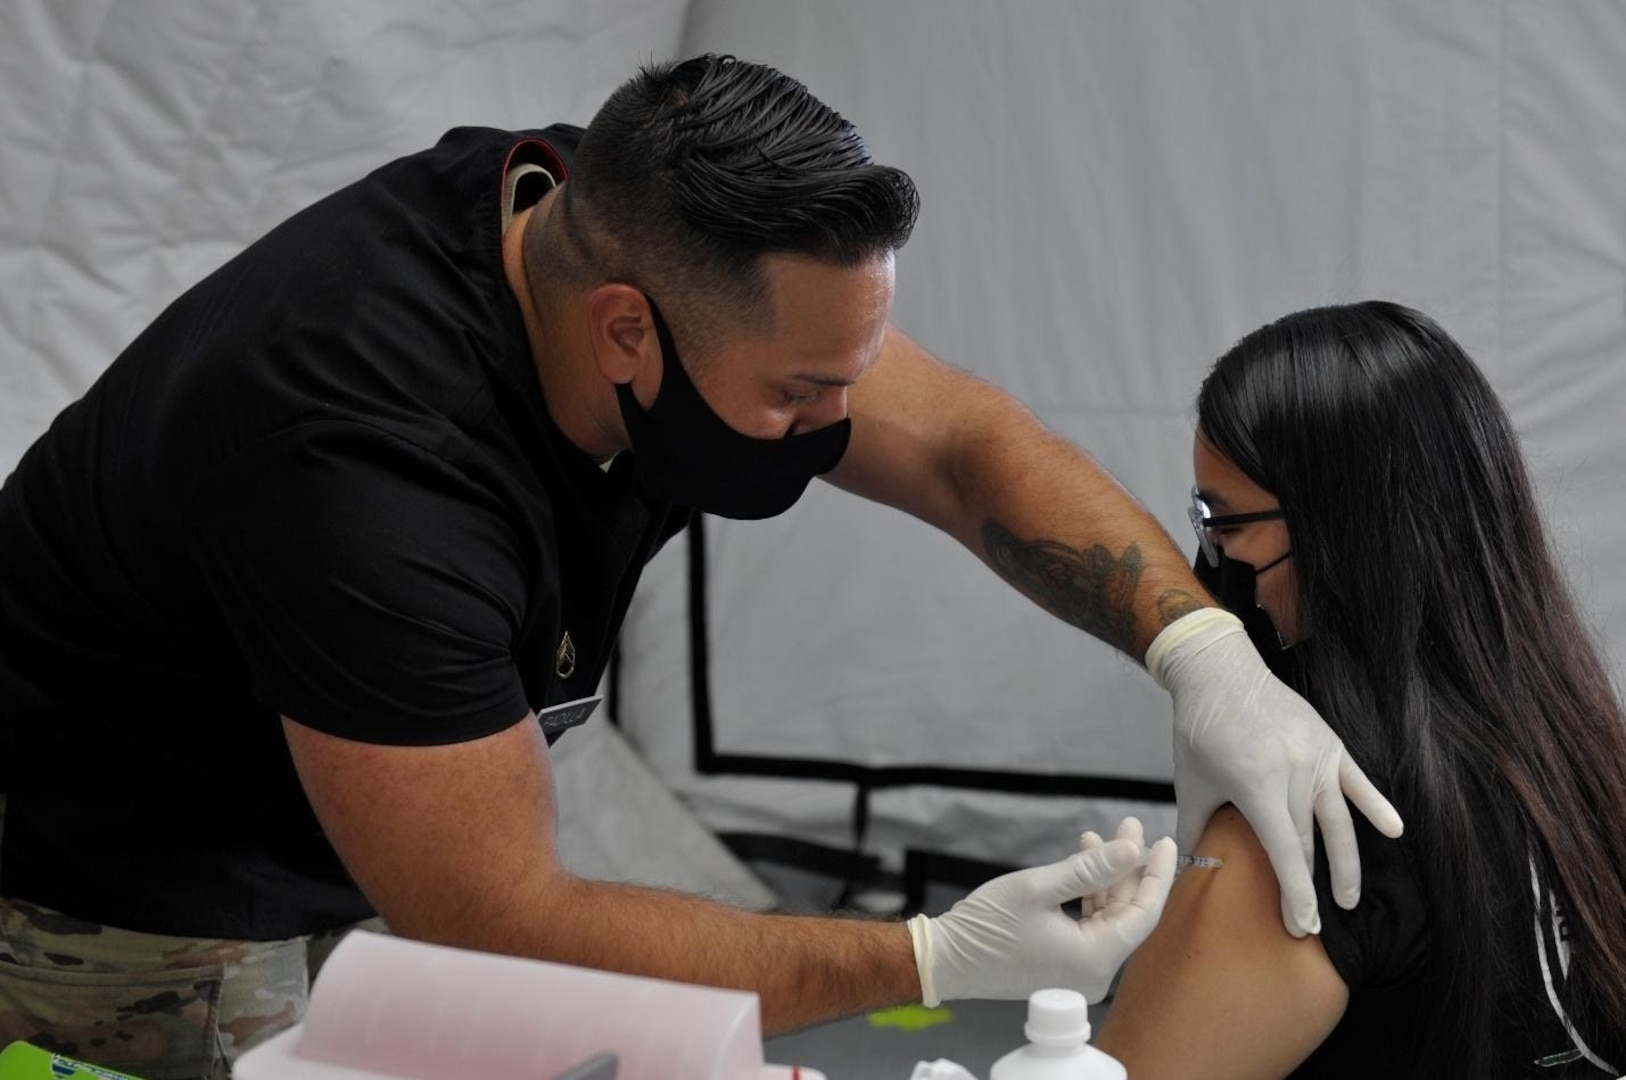 Staff Sgt. Joshua Padilla, assigned to 25th Infantry Division, administers a COVID-19 Vaccine in support of the Commonwealth Healthcare Corporation (CHCC) COVID-19 Vaccination team at the Medical Care and Treatment Site (MCATS).